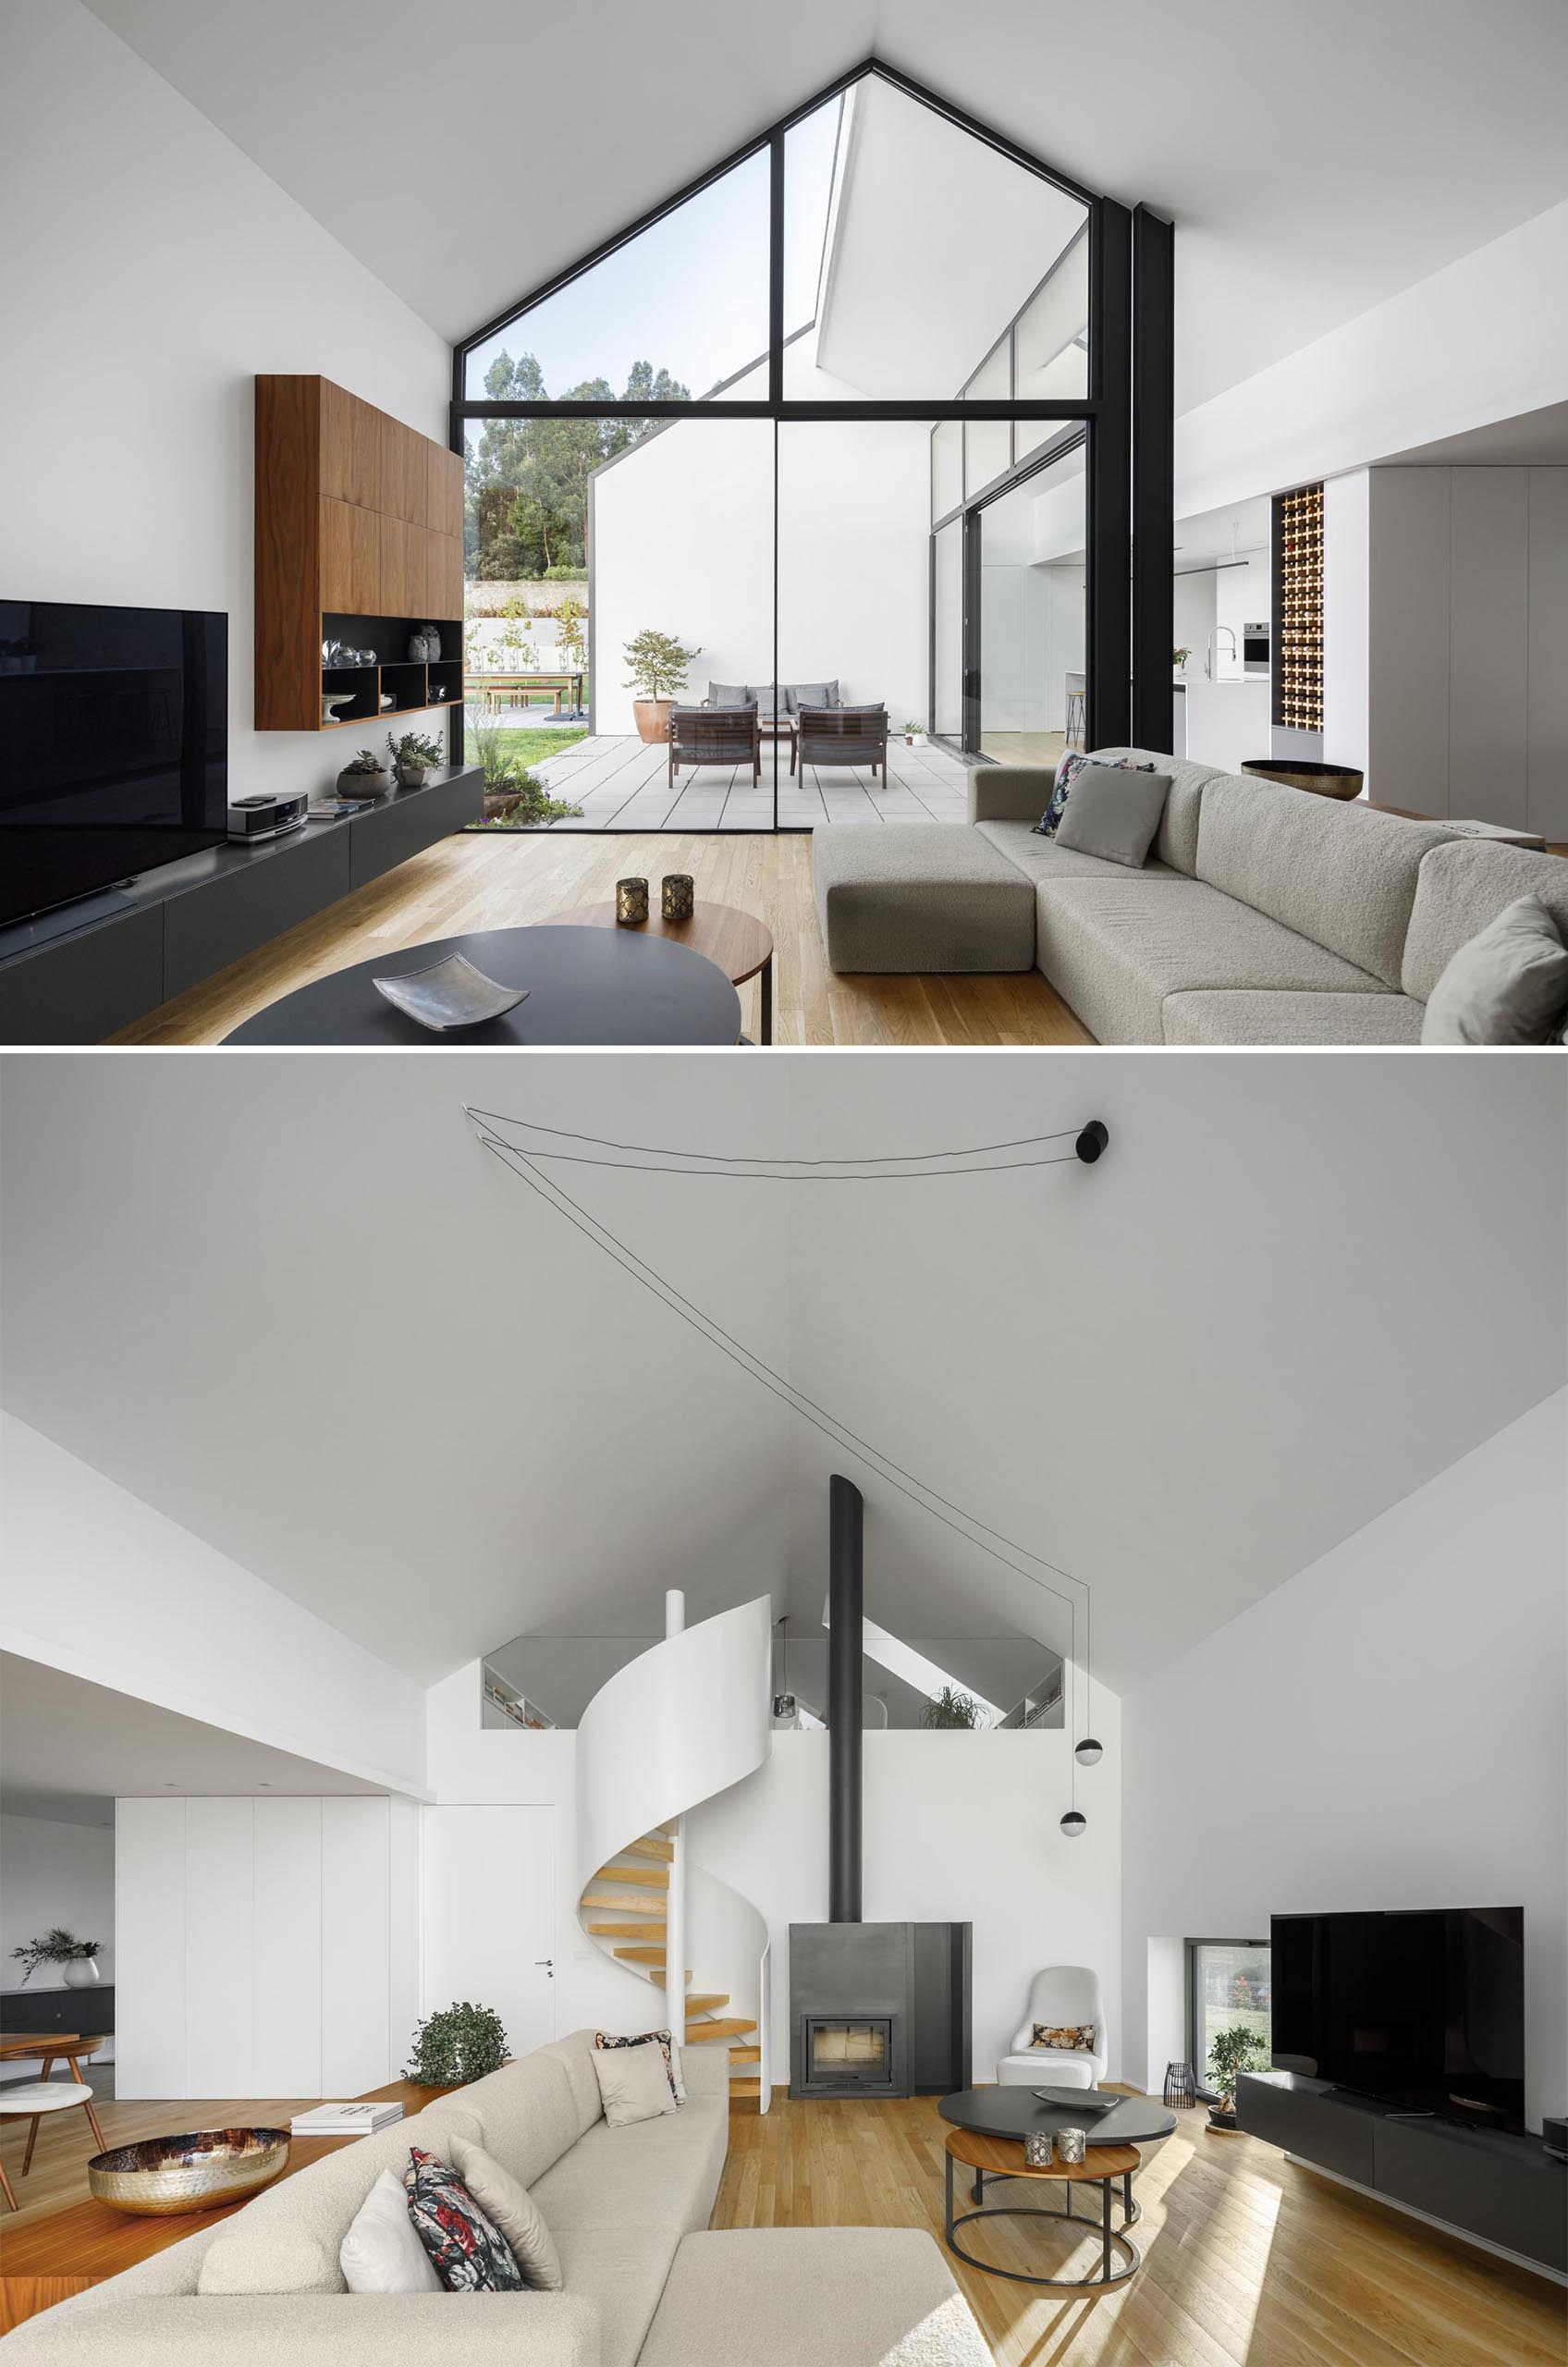 A modern living room with a gabled ceiling, white spiral staircase, and fireplace with a black steel surround.